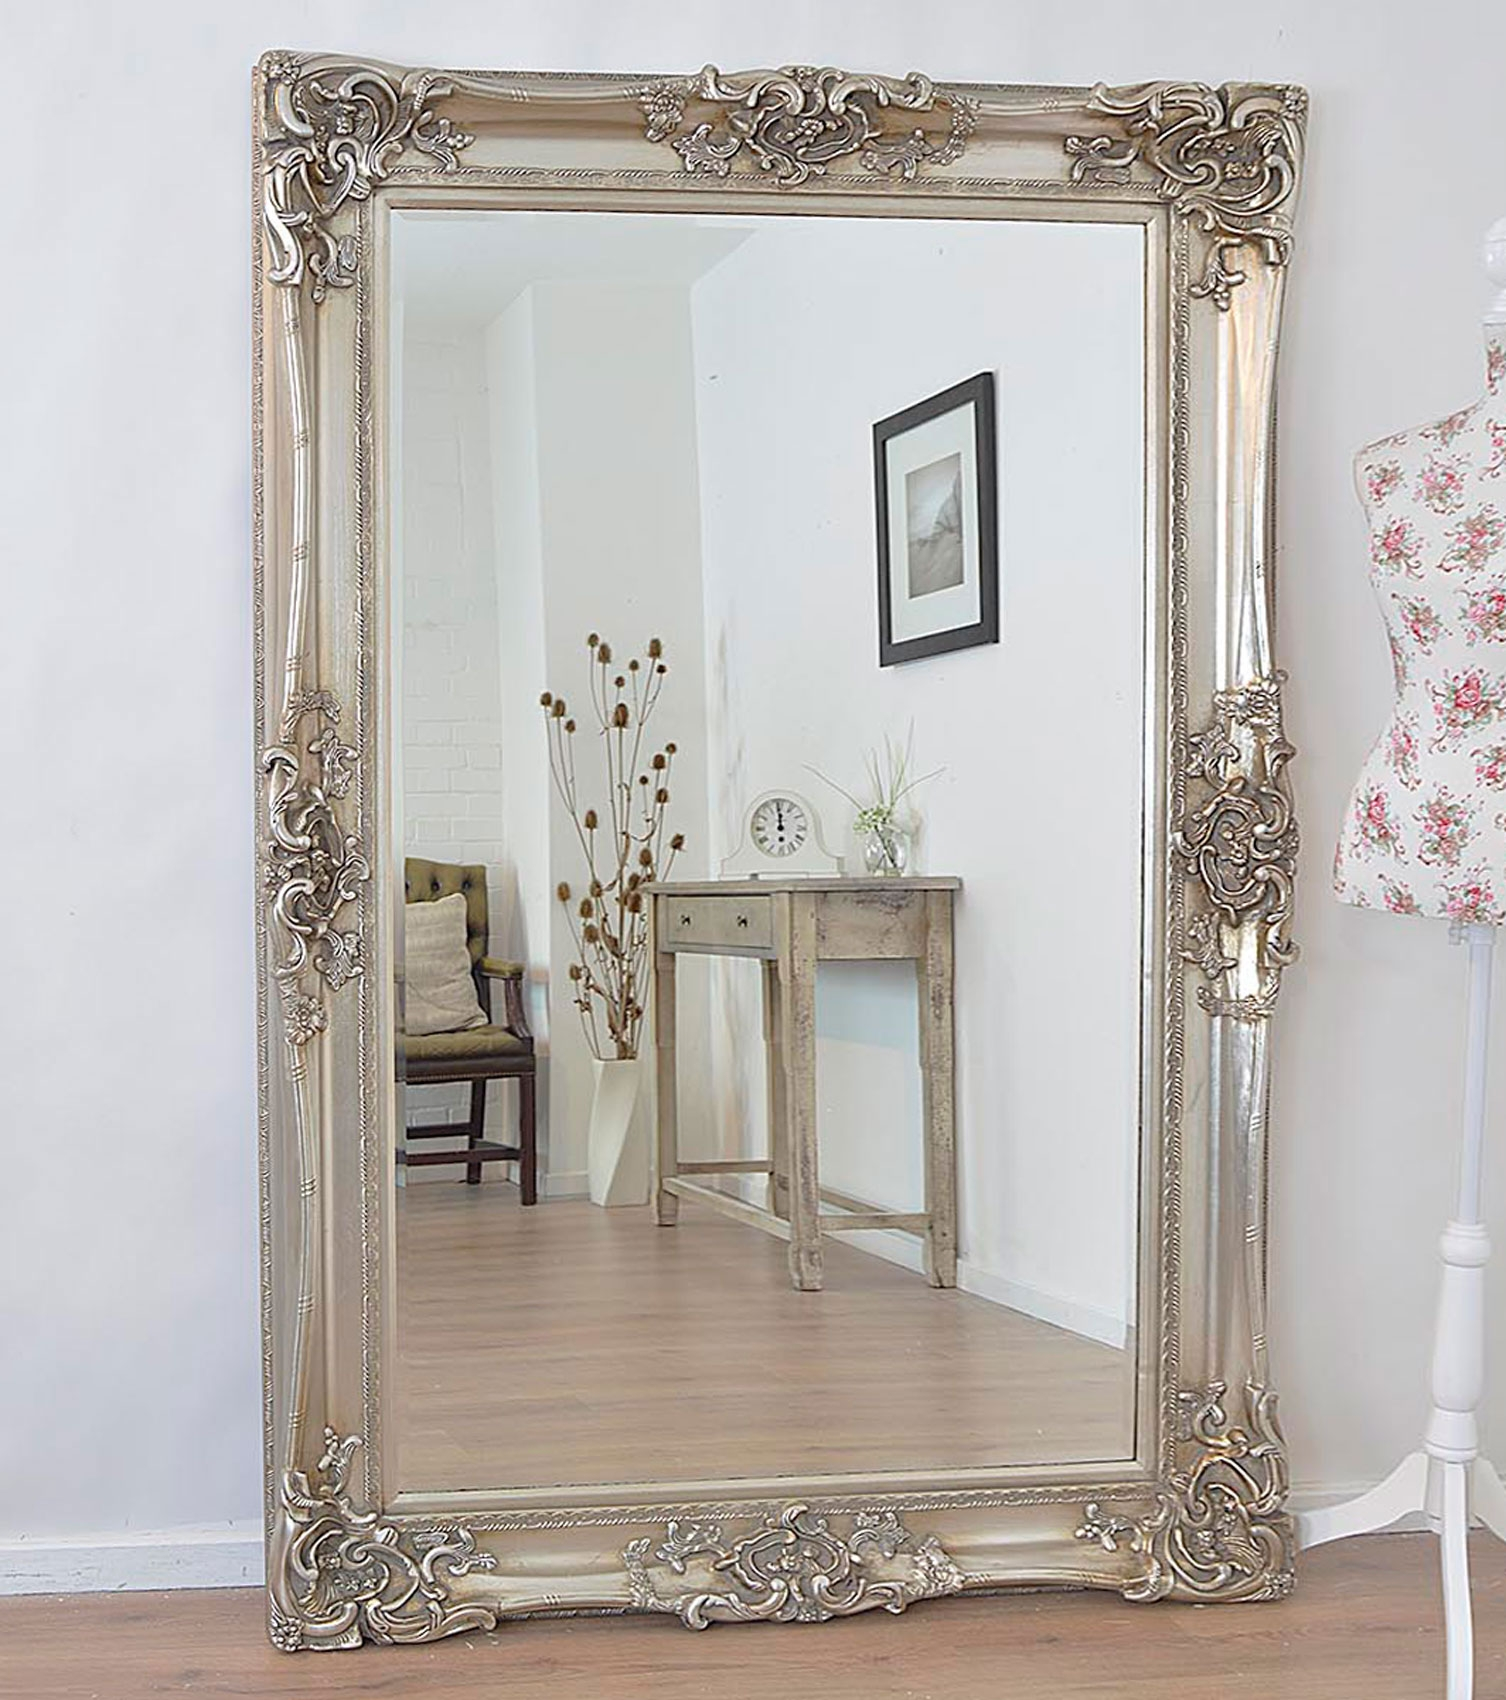 Antique Design Ornate Wall Mirror Will Make A Beautiful Addition With Regard To Ornate Wall Mirror (Image 1 of 15)